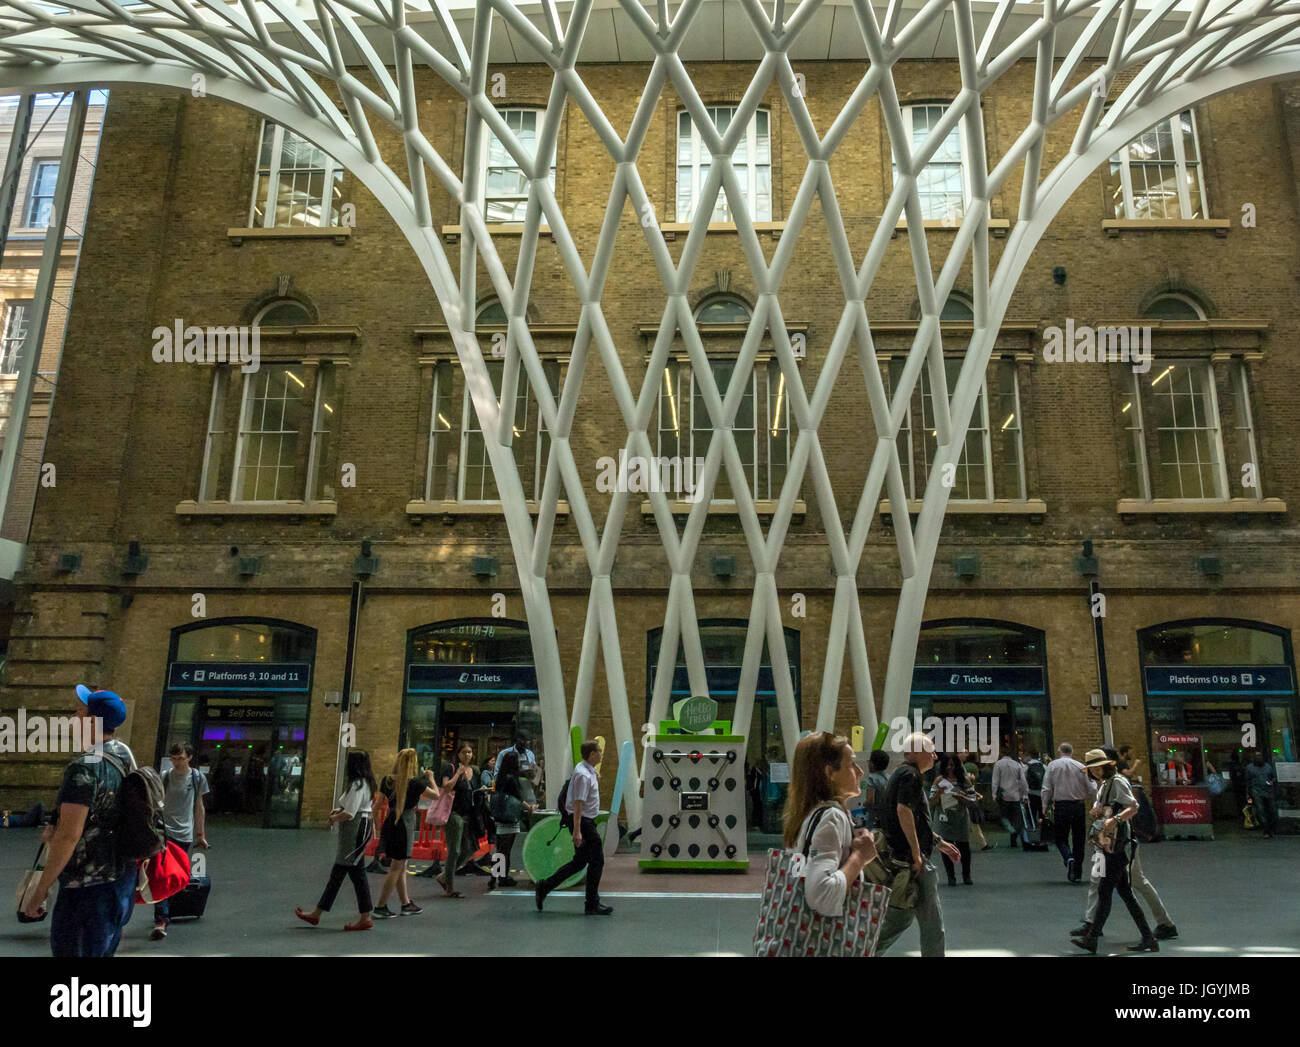 People in main concourse at King's Cross Station, London, England,  UK, in front of giant arched lattice trellis - Stock Image